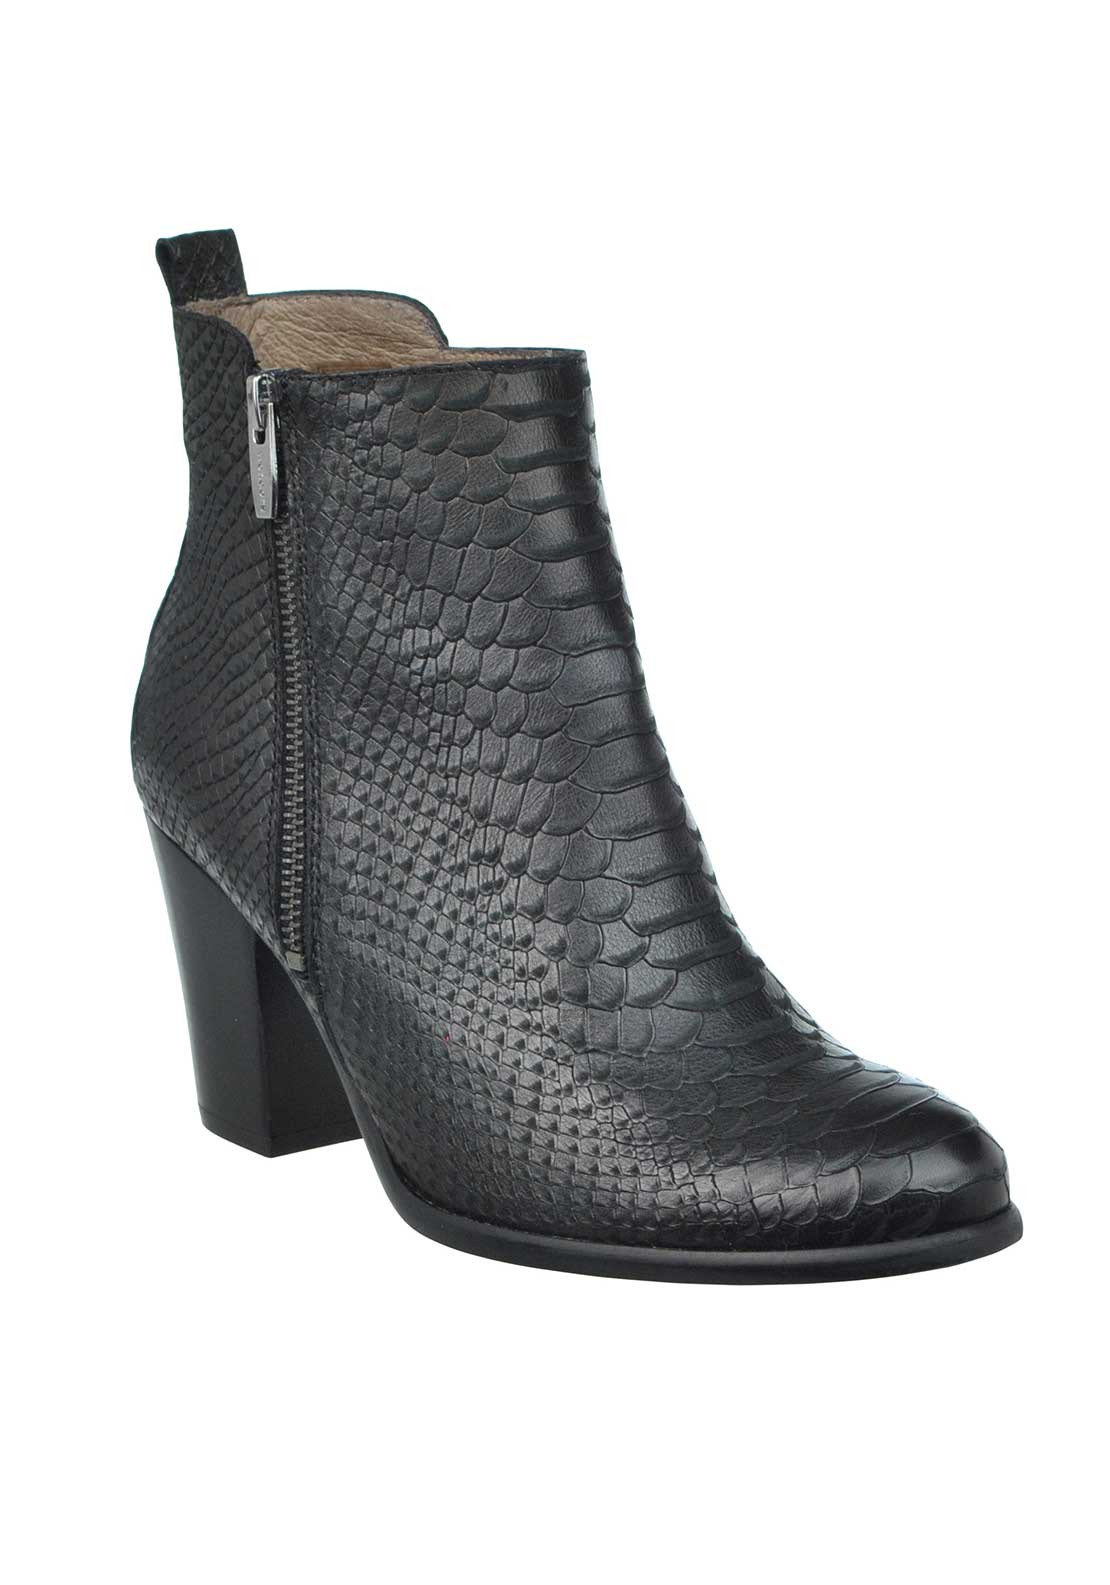 Wonders Leather Reptile Print Heeled Ankle Boots, Black